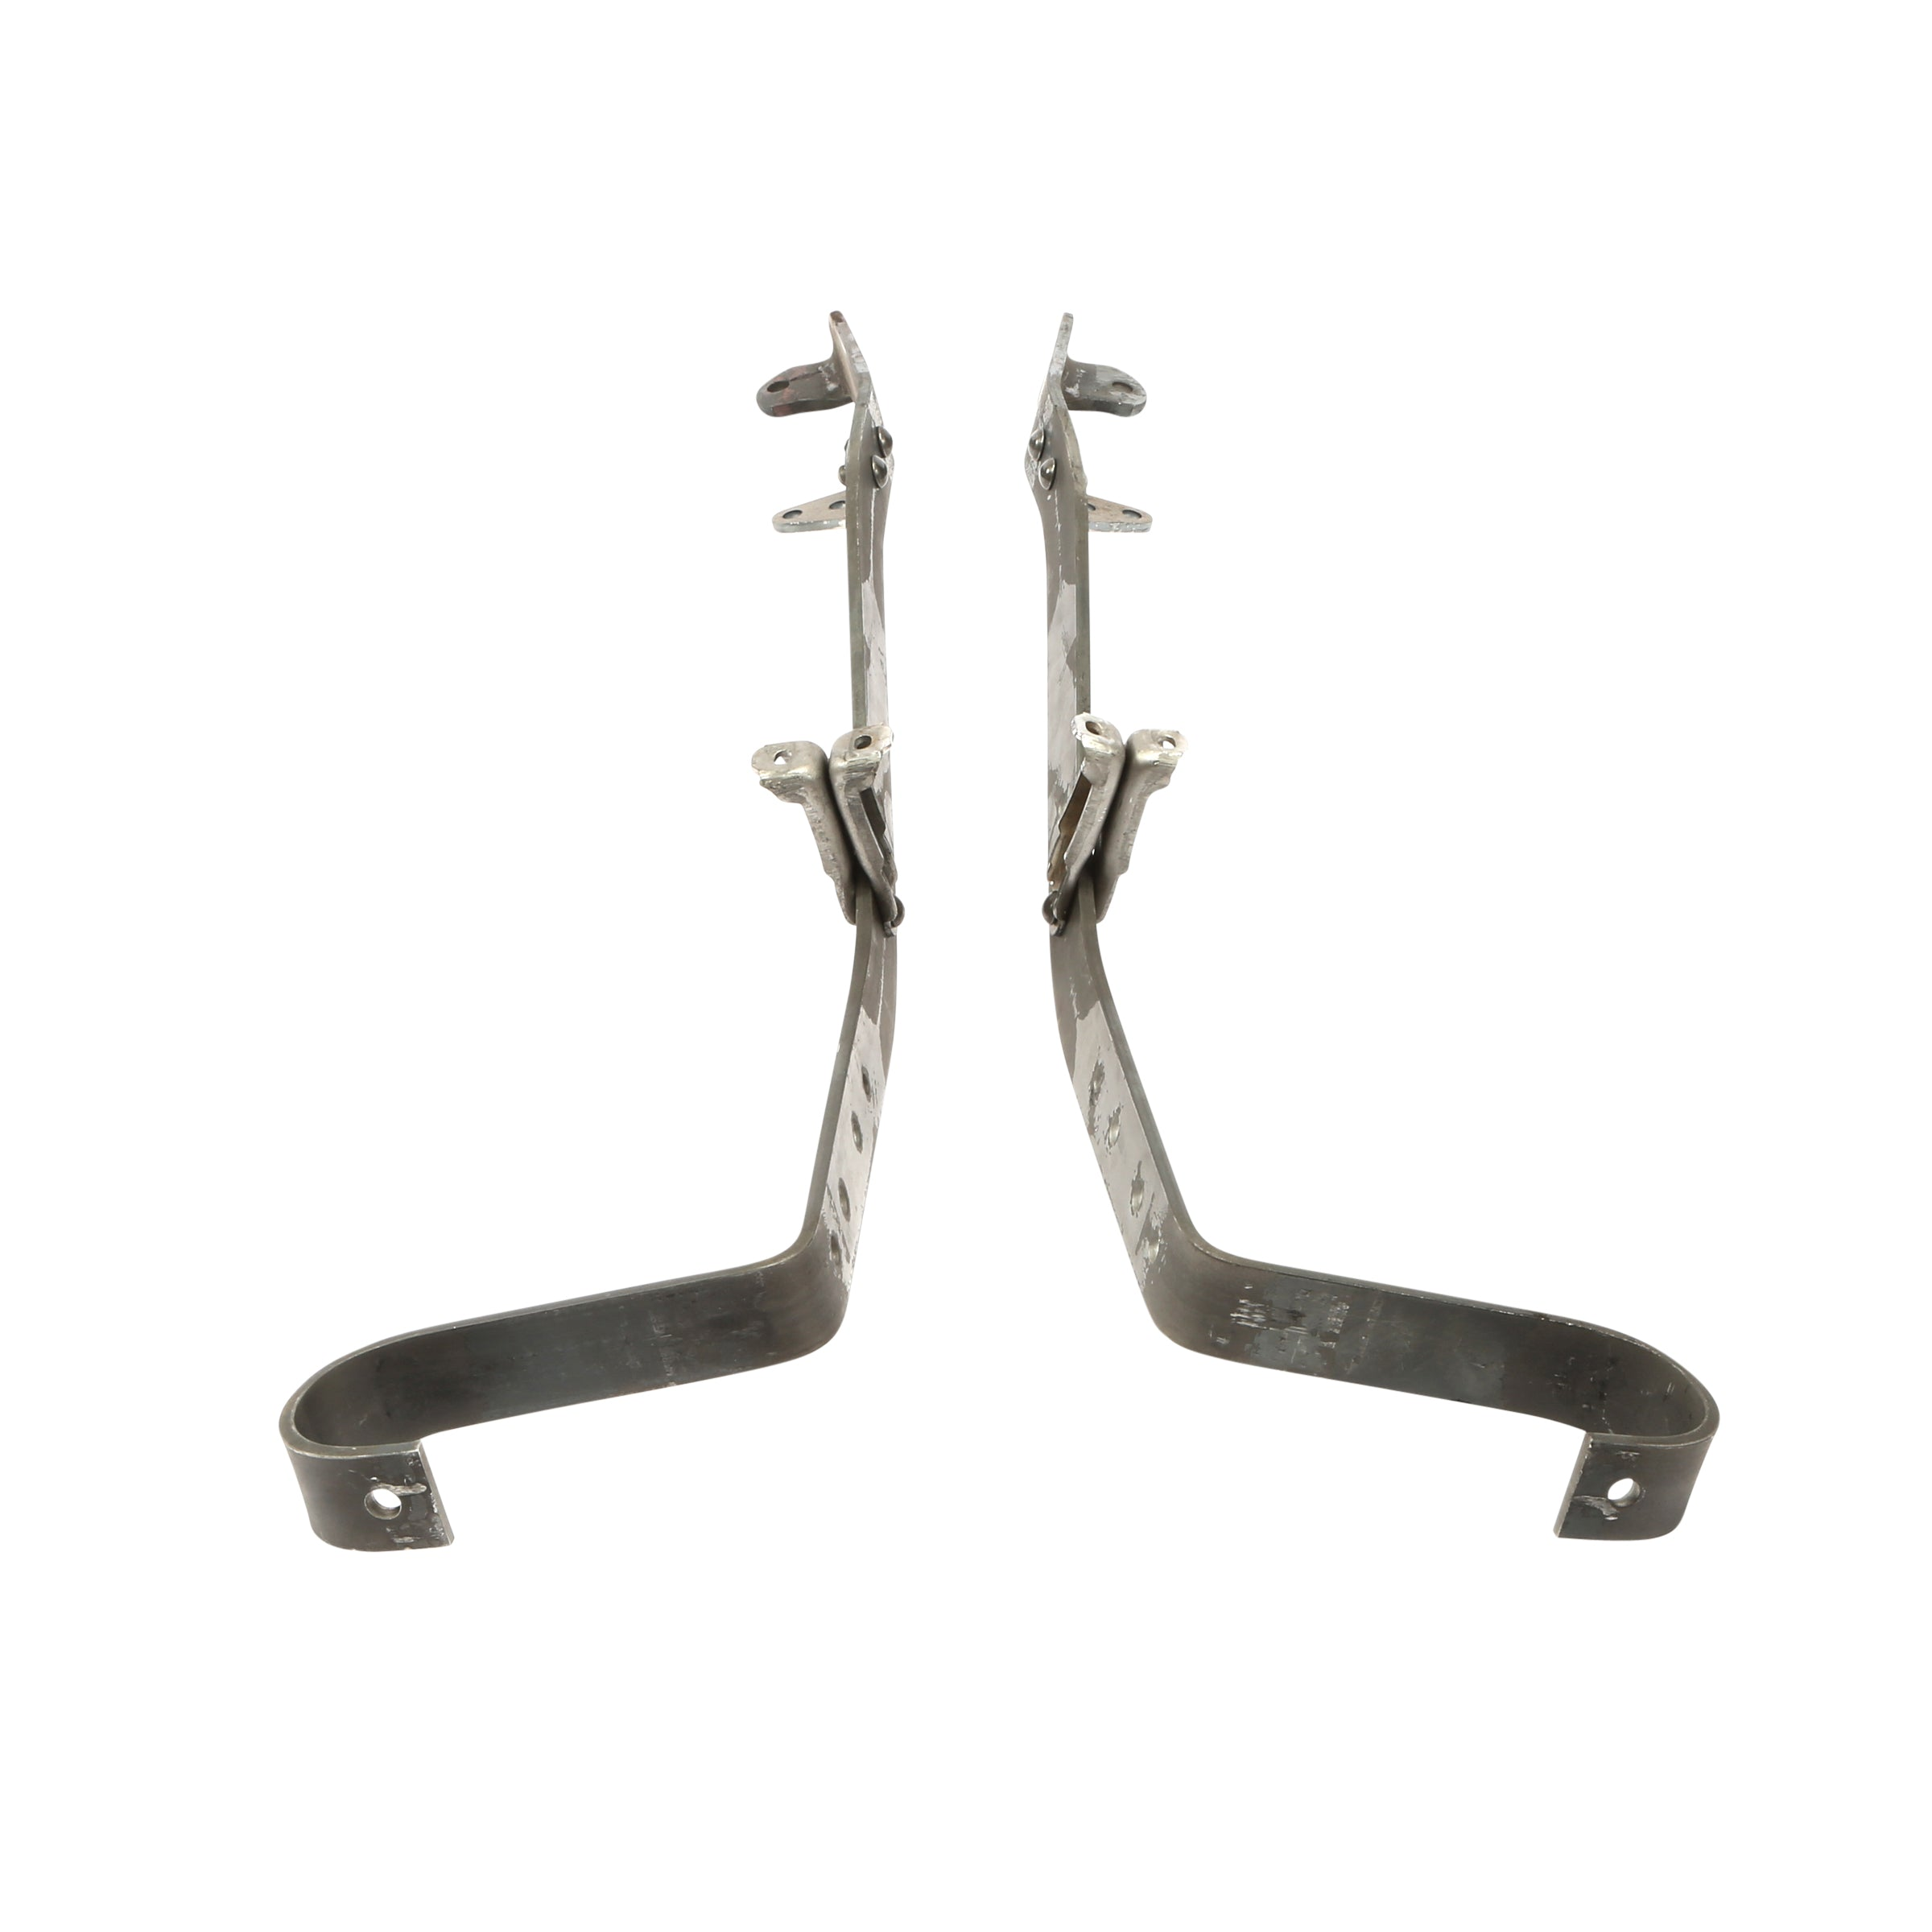 Rear Bumper Frame Brackets • 1928-31